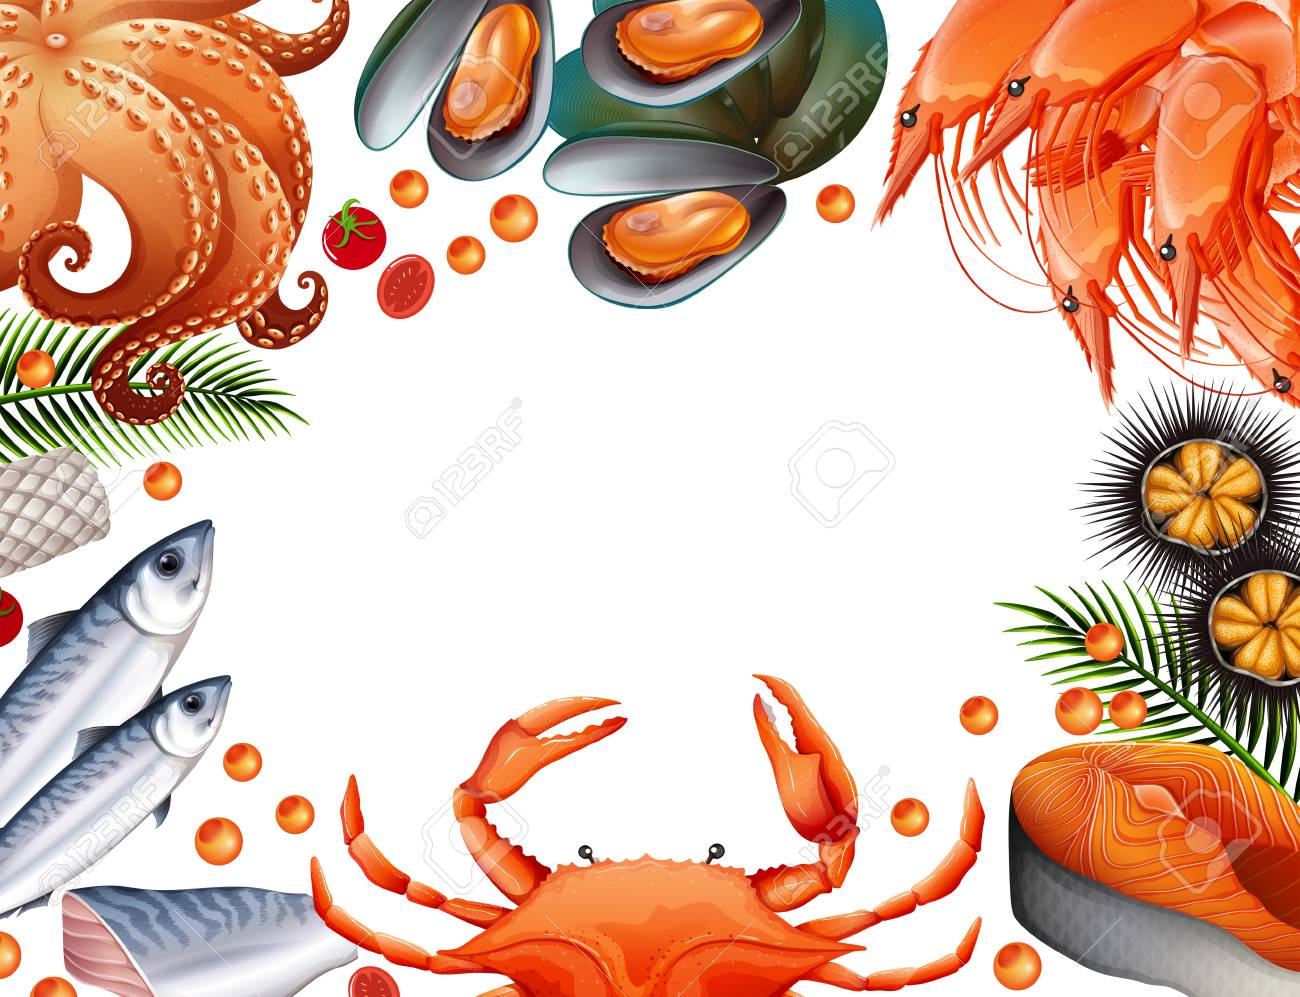 hight resolution of border template with different kinds of seafood illustration stock vector 90455457